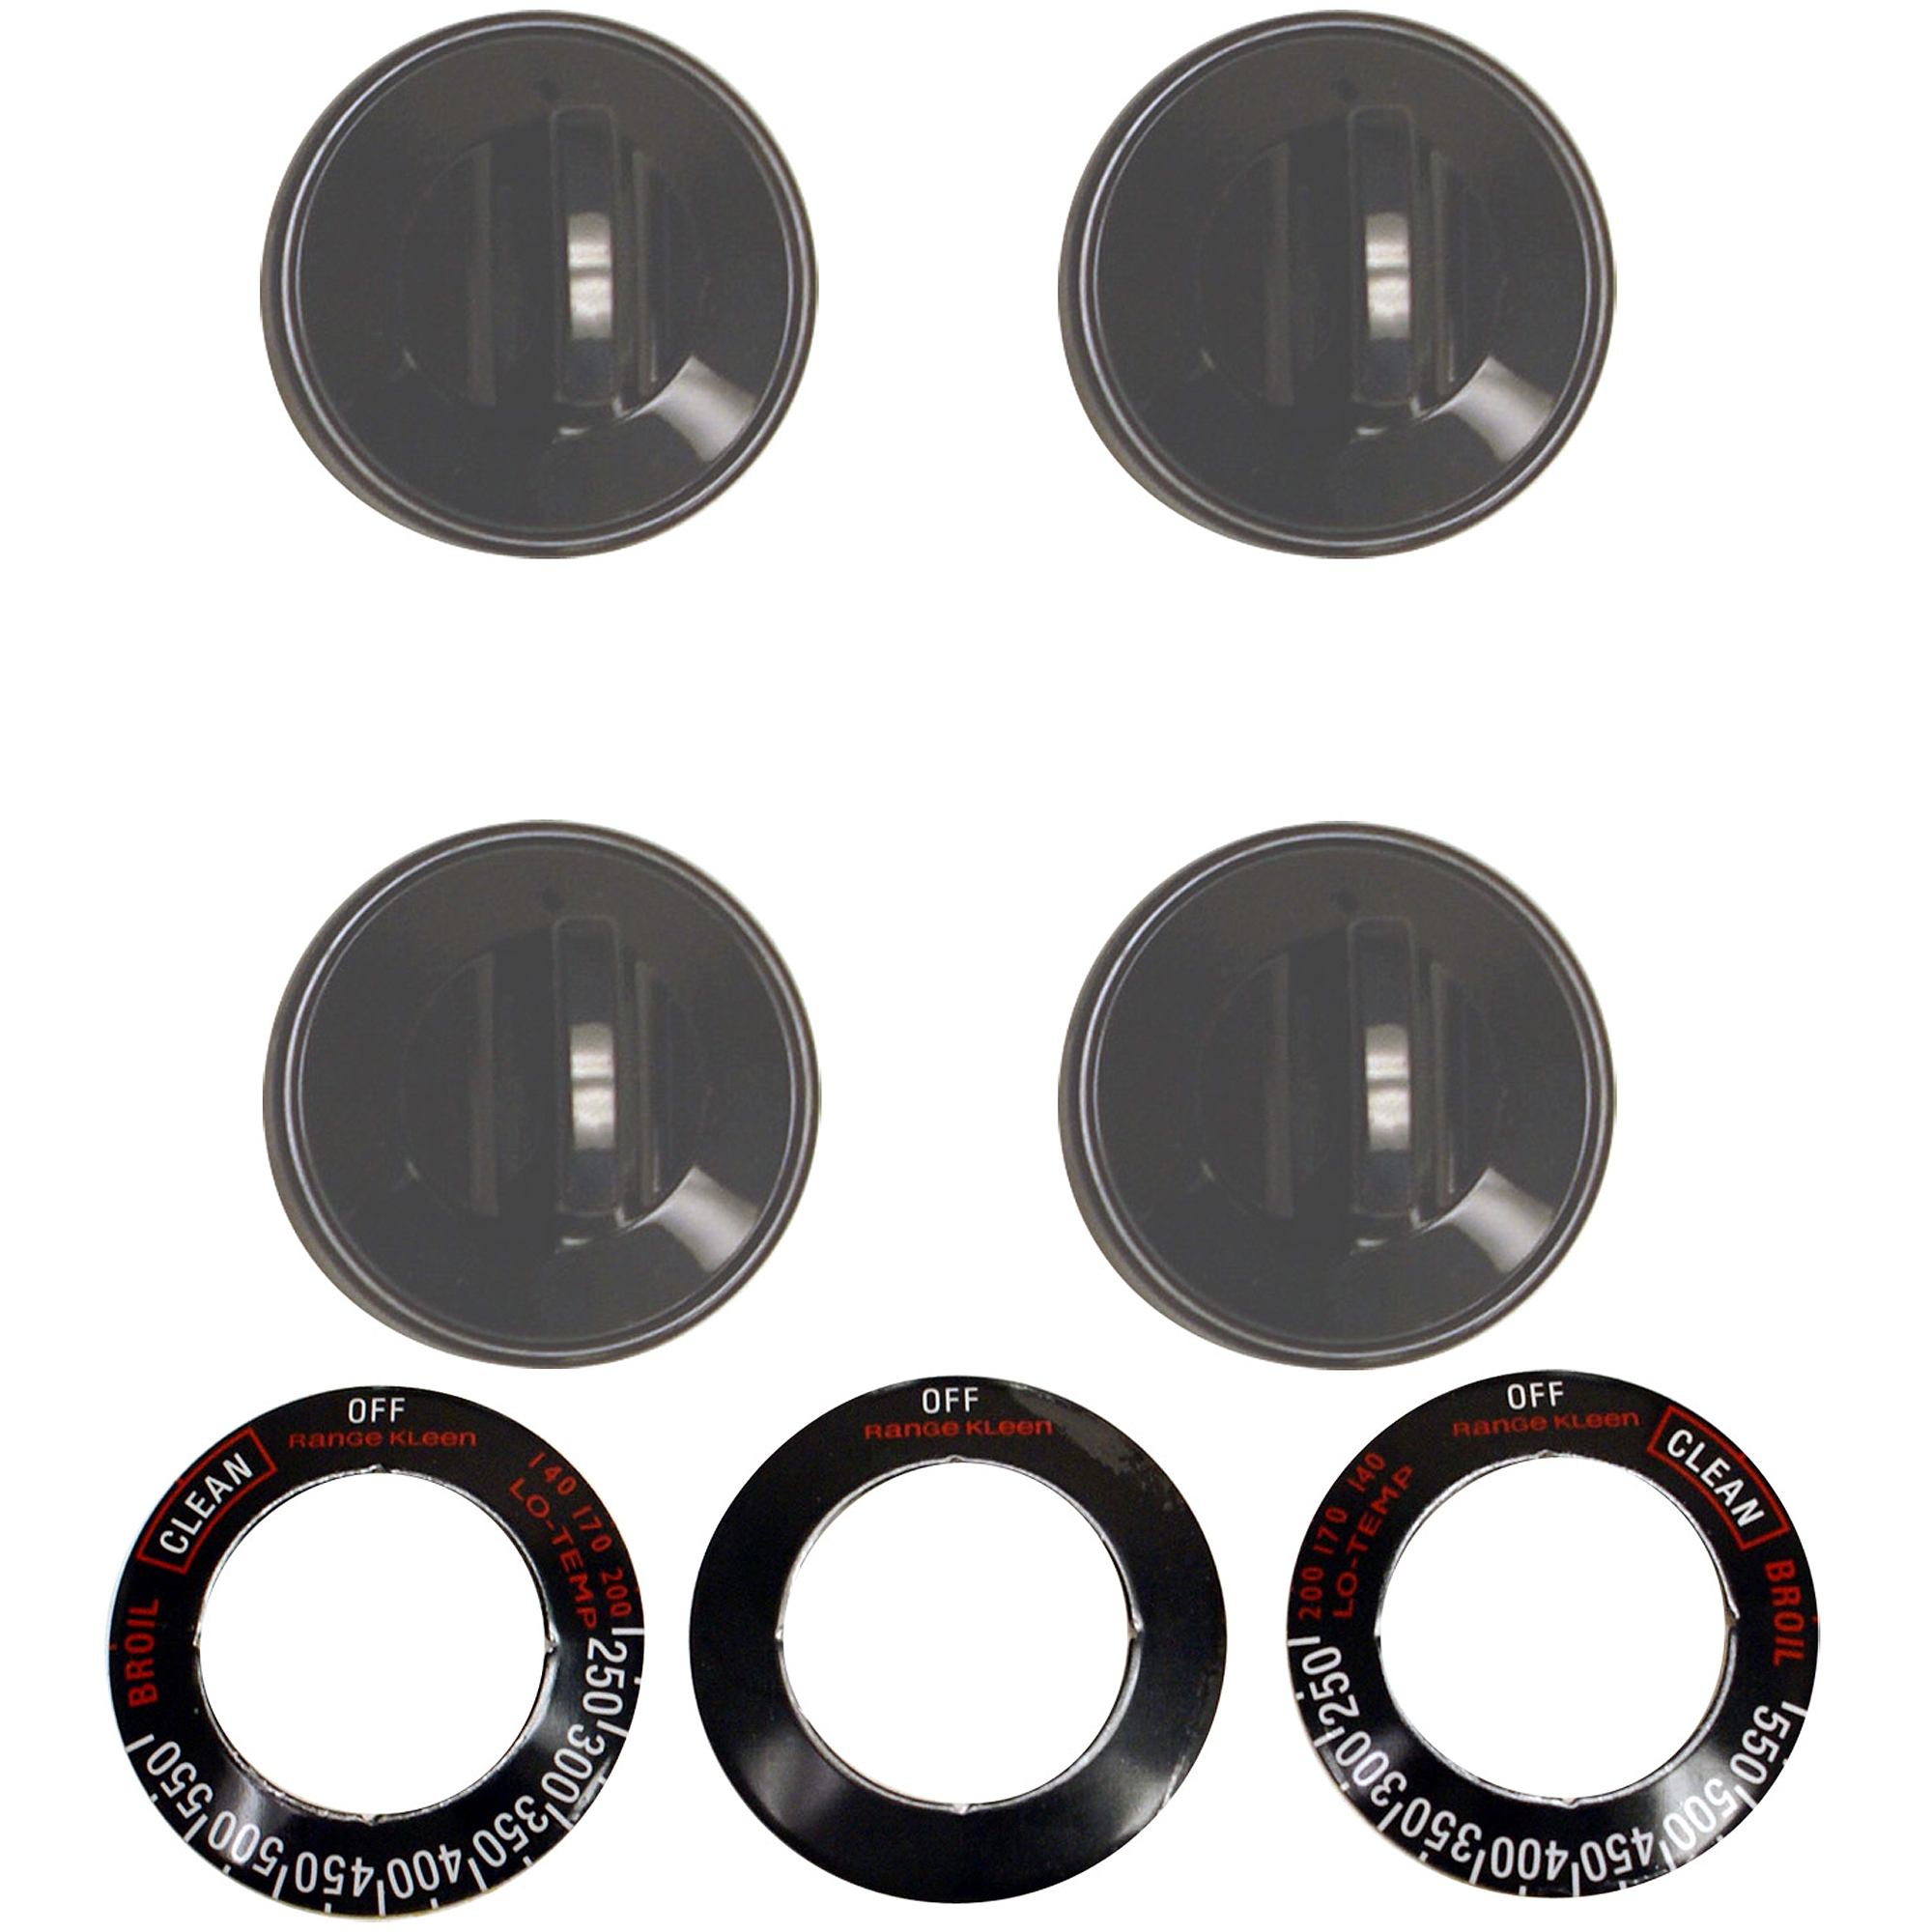 Range Kleen 16-Piece Replacement Knob Kit for 4 Knobs, Gas Ranges, Black